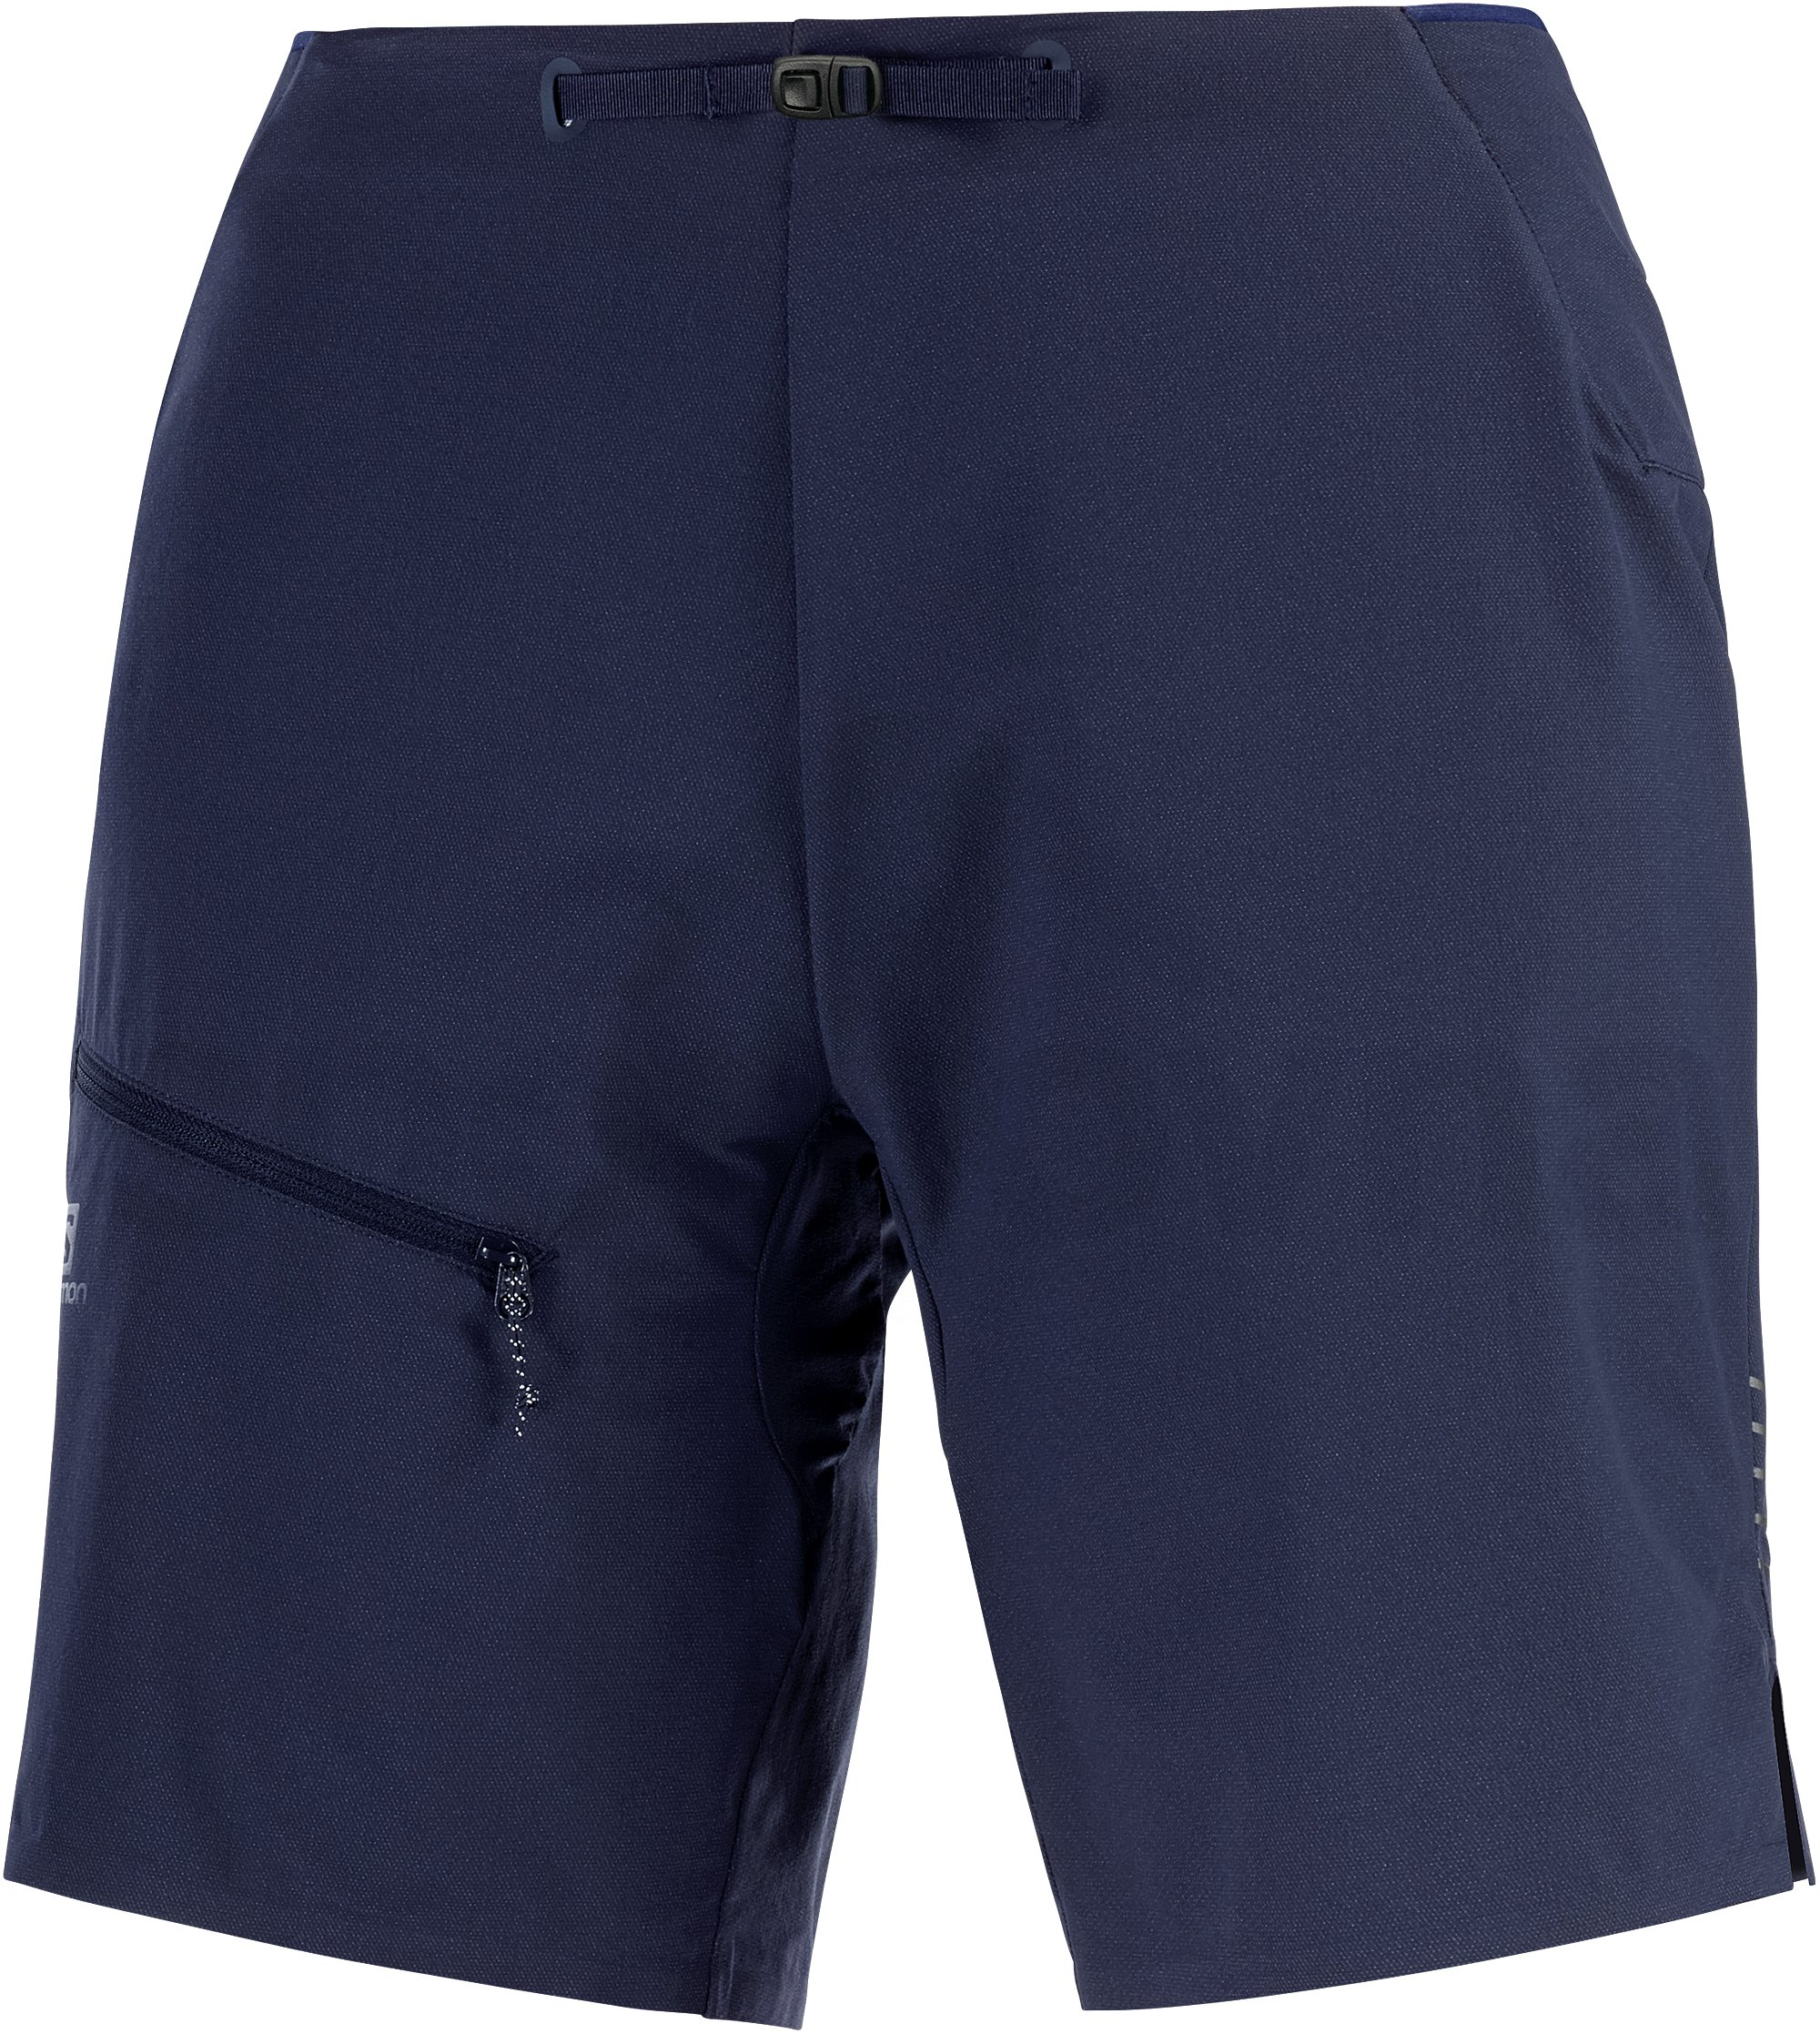 LC1504800_0_GHO_outspeedshort_nightsky_outdoor_w